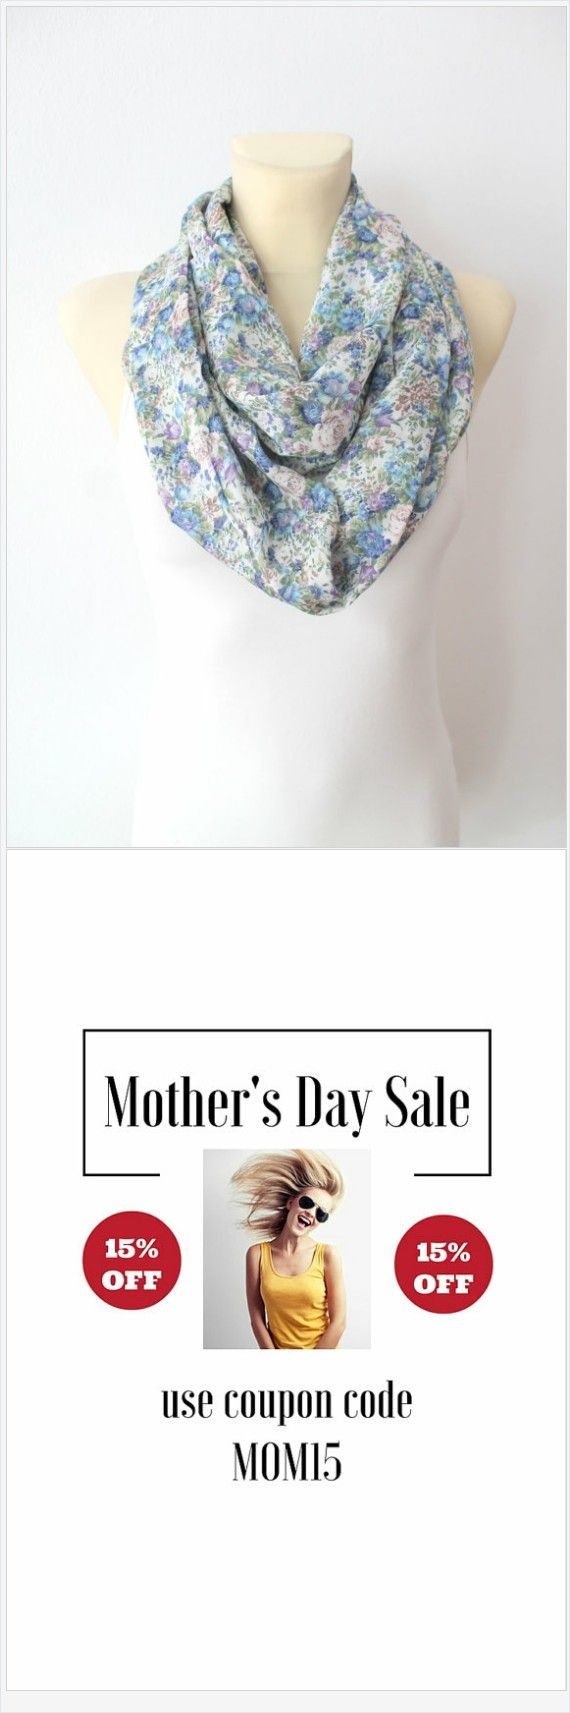 Mother's Day Sale now on! All our handmade scarves are 15%OFF until May. Use coupon code MOM15 at the checkout when you visit Locotrends on Etsy.   Find a unique gift for Mom among those fantastic women fashion accessories! You can chose from silk scarves, satin scarves, floral scarves, animal print scarves, boho scarves, fabric scarves, knit scarves. We have scarves for all seasons: Spring scarves, Summer scarves, Fall scarves and Winter scarves